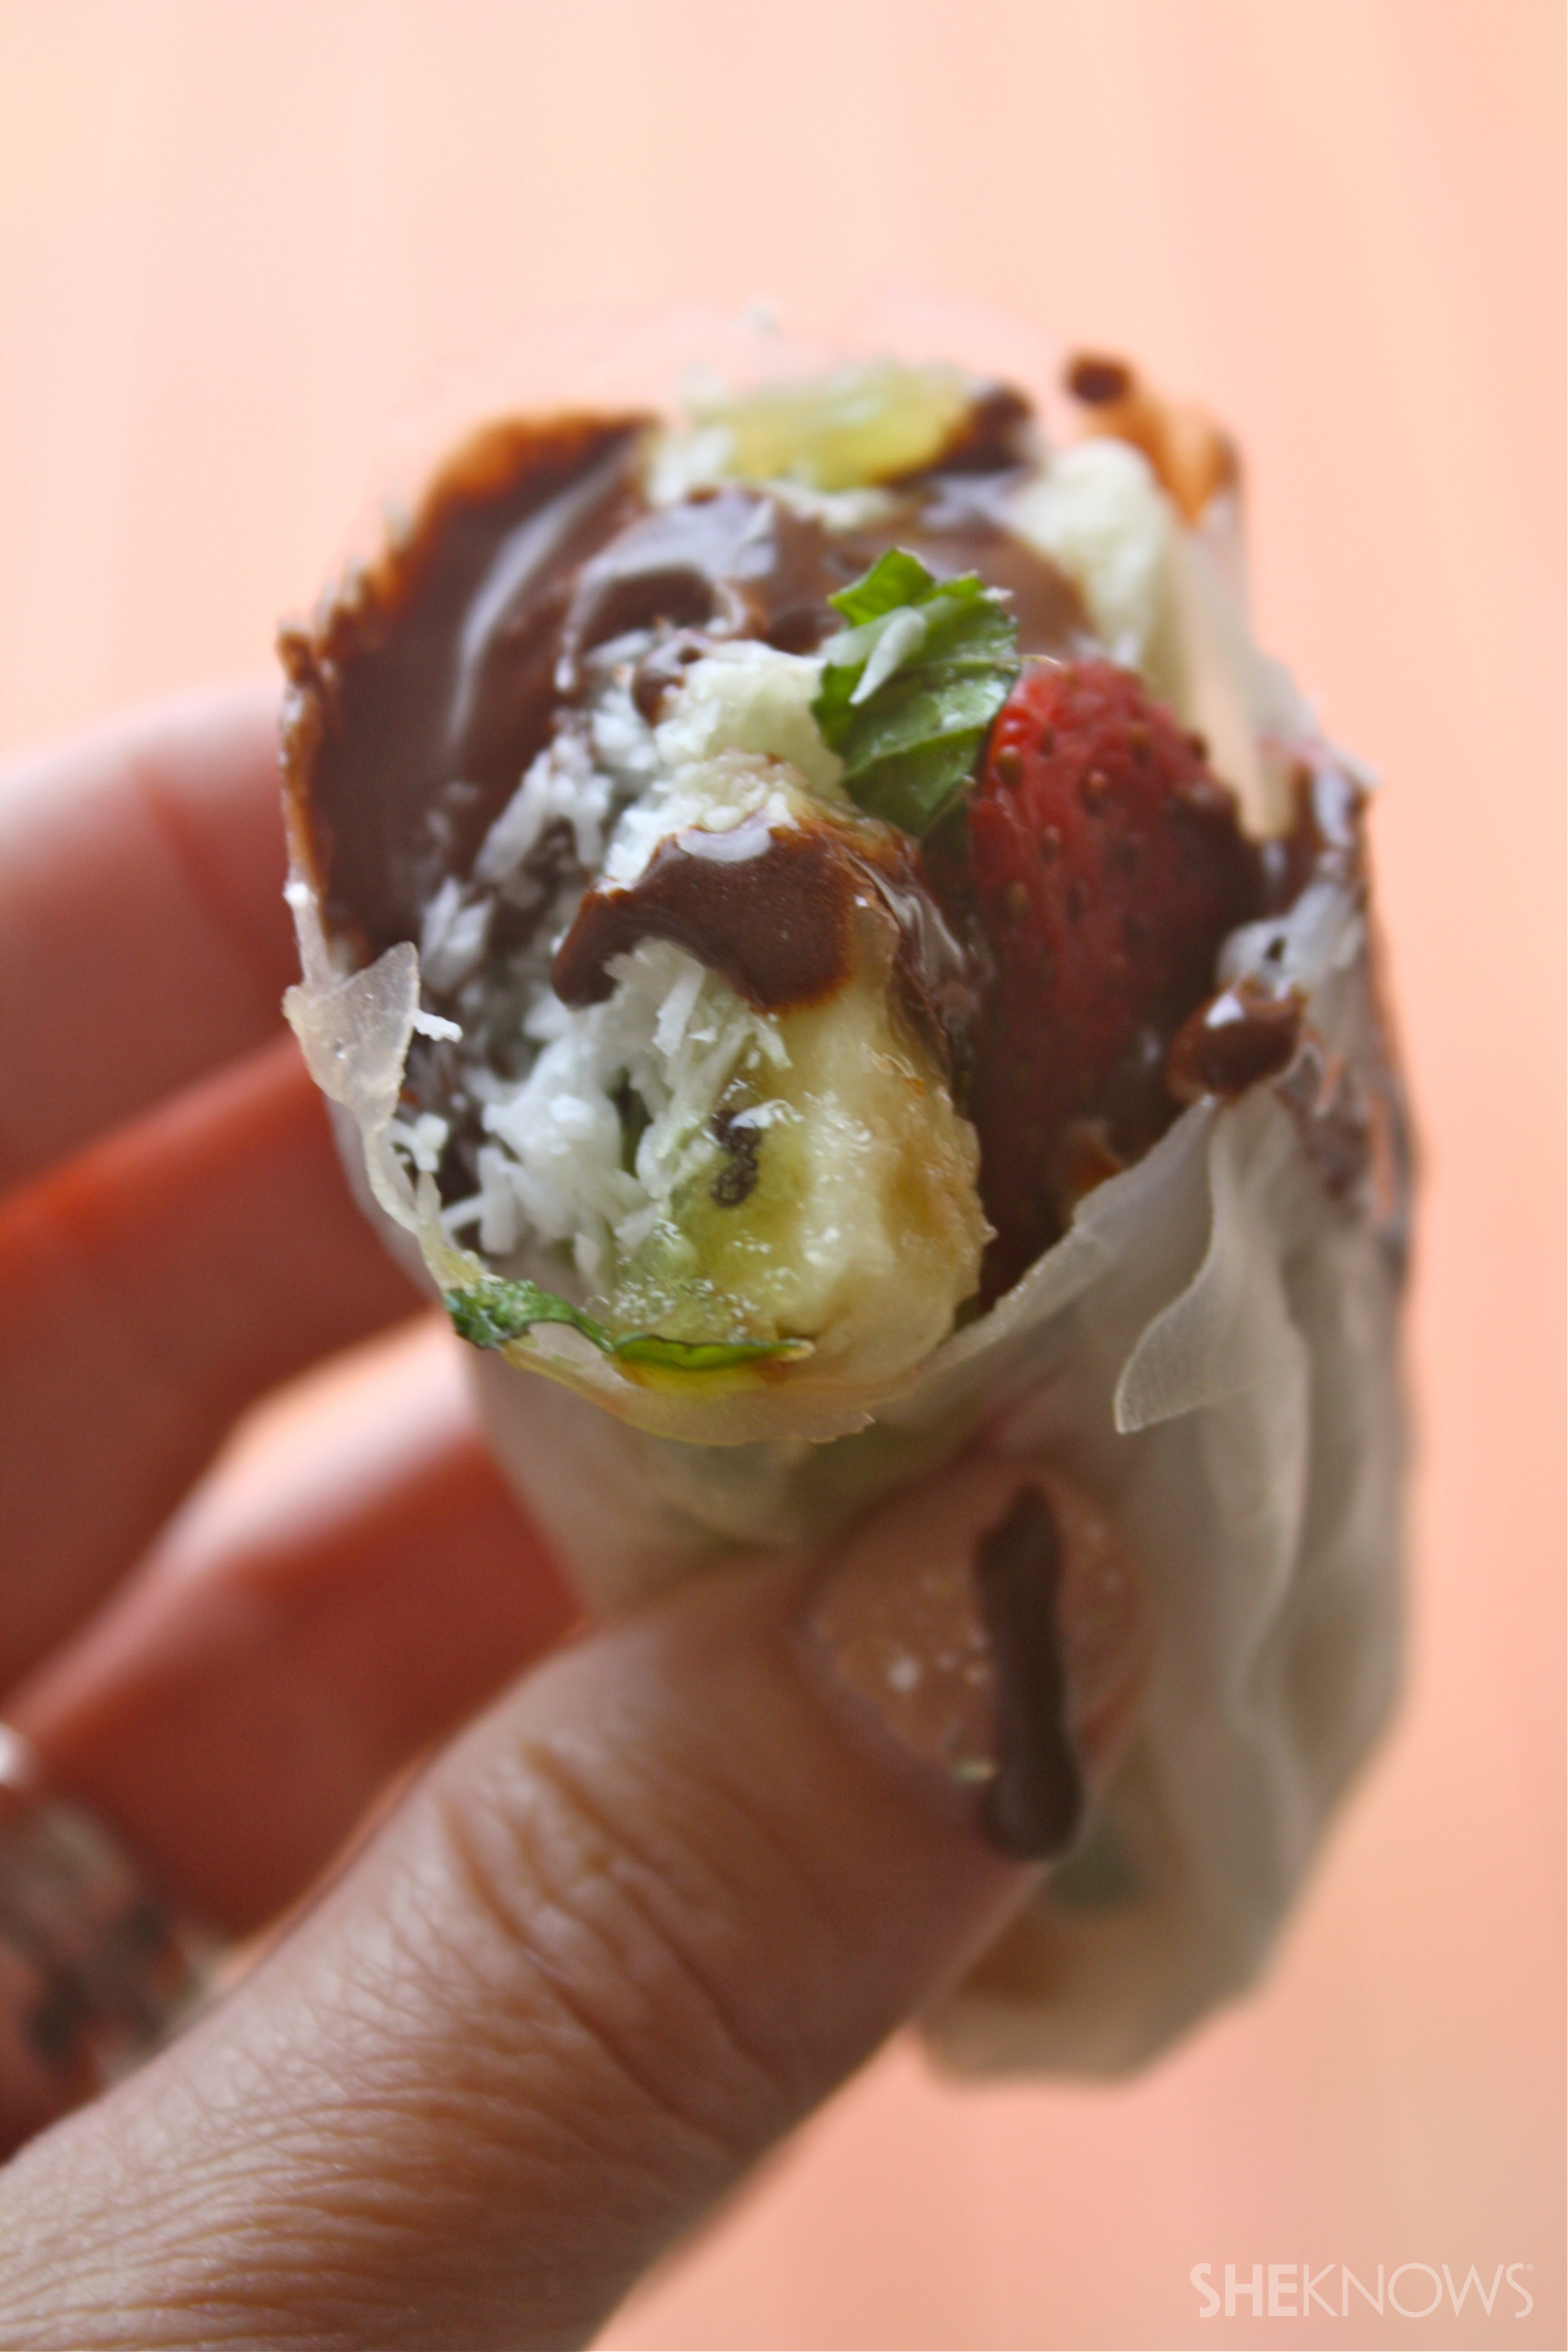 Vegan strawberry, banana & almond spring rolls with chocolate sauce